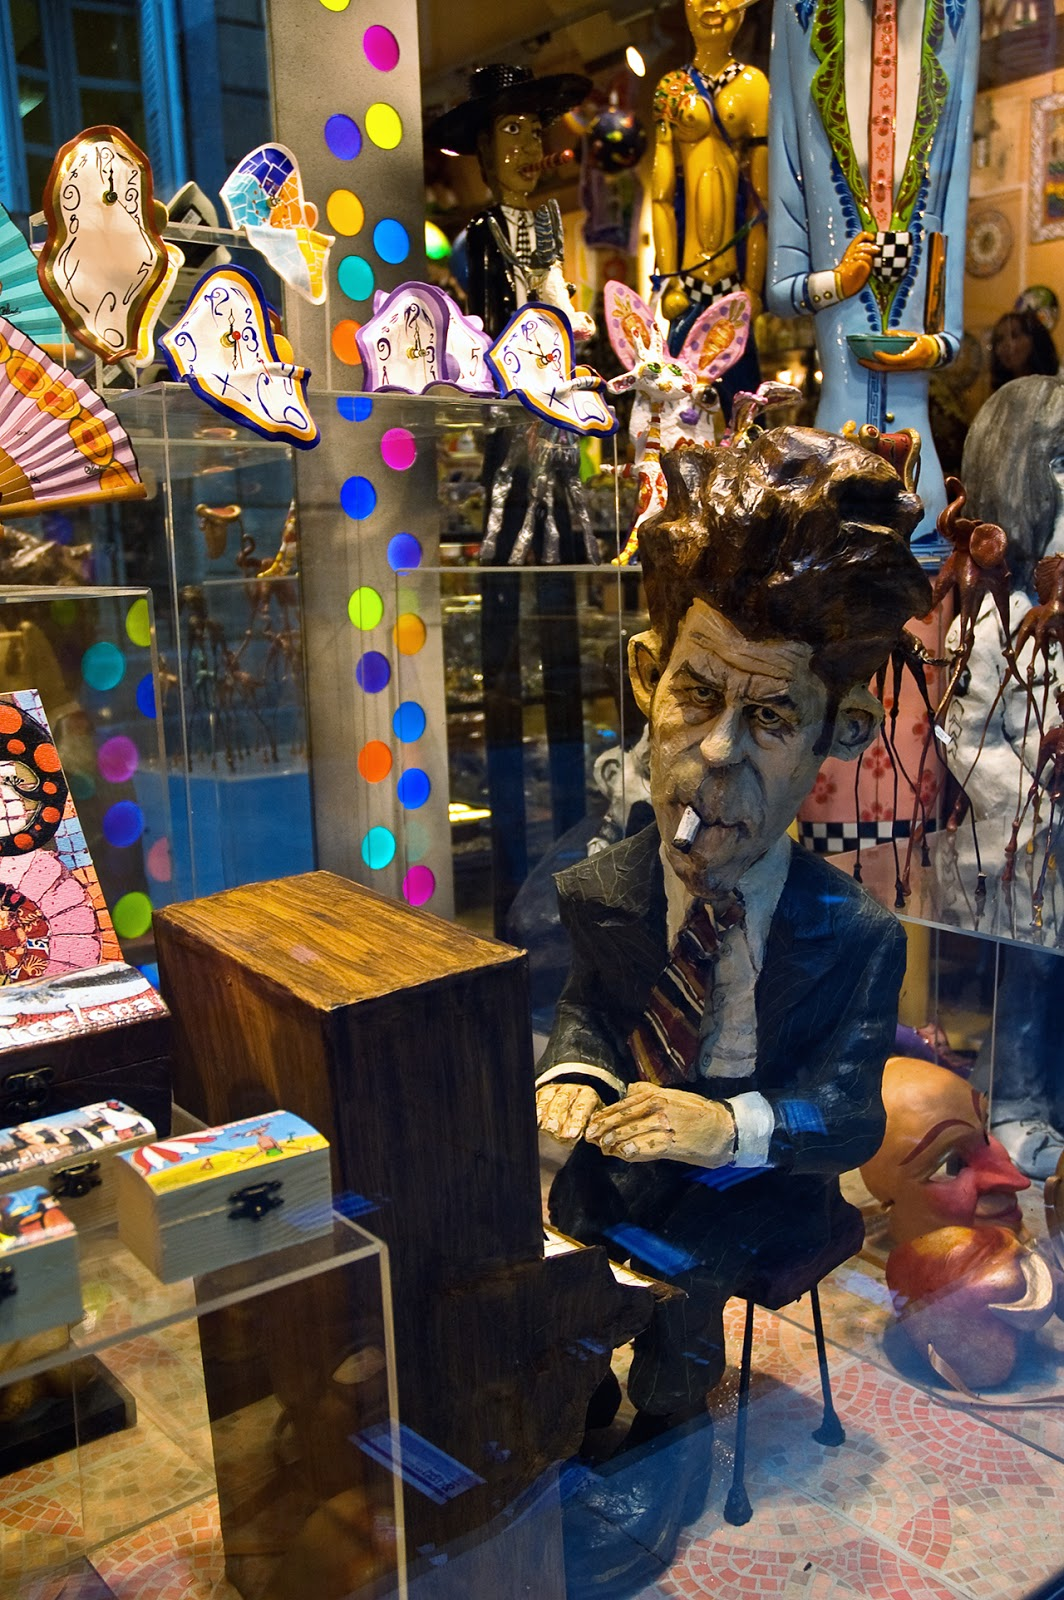 Tom Waits in Papier Mache, Barcelona